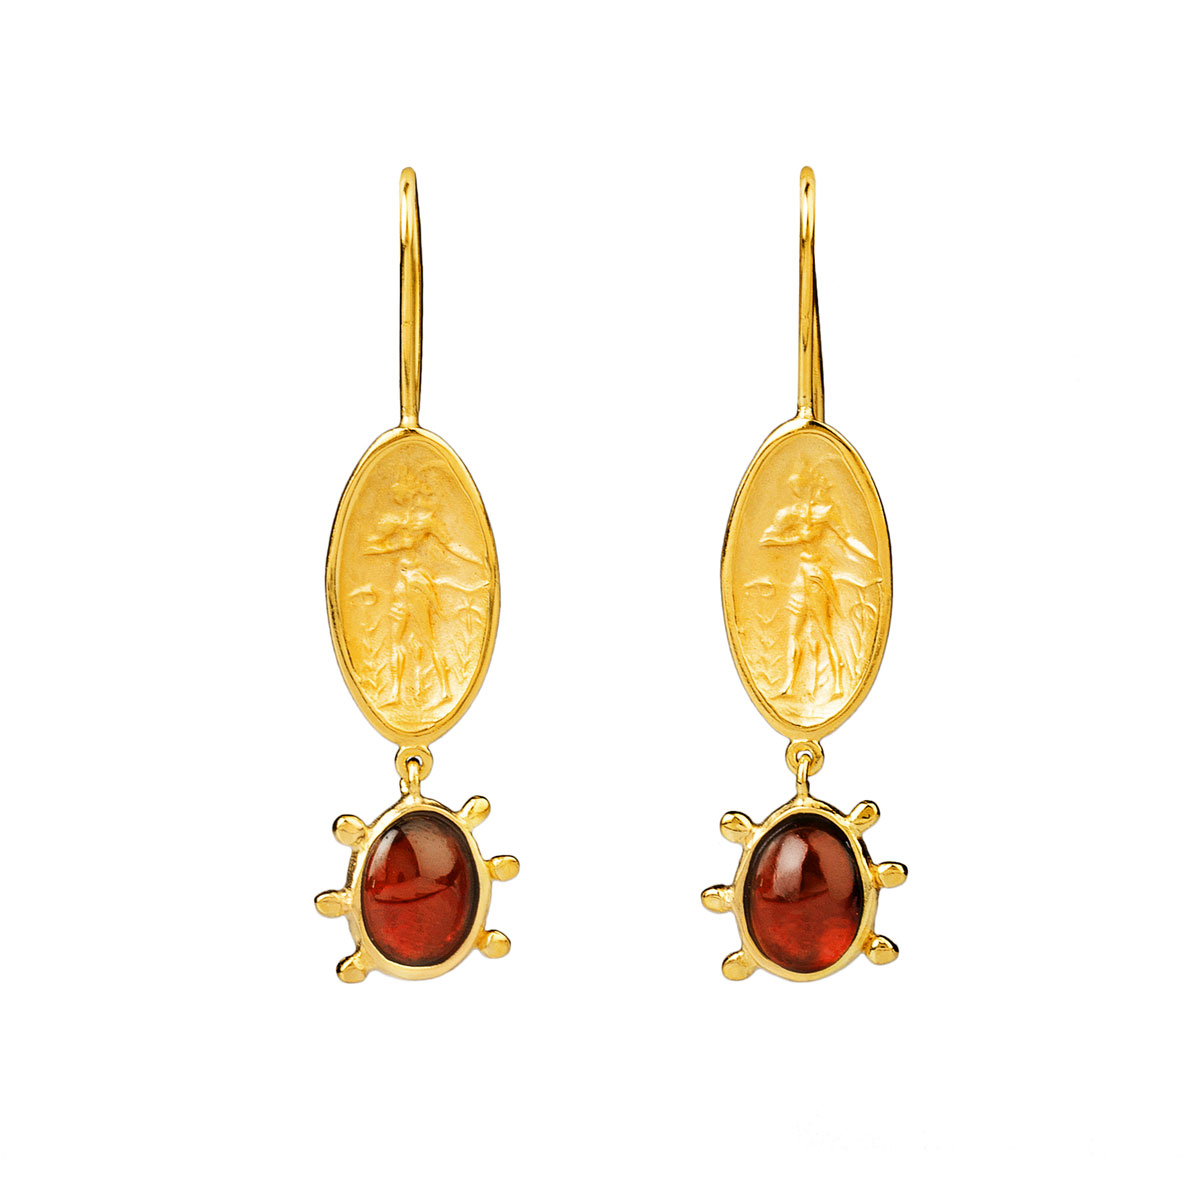 dimitra-earrings-danai-gianelli_high